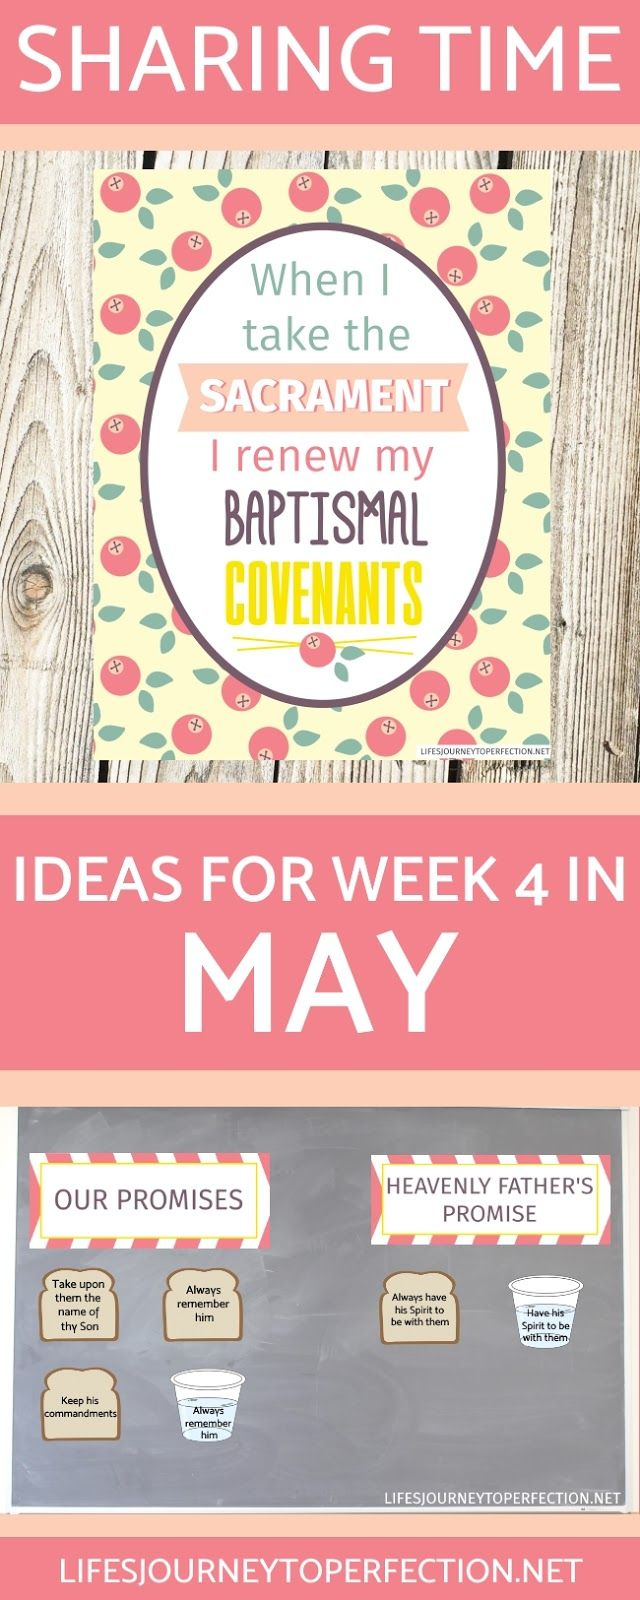 SHARING TIME IDEAS FOR LDS PRIMARY MAY WEEK 4 WHEN I TAKE THE SACRAMENT I RENEW MY BAPTISMAL COVENANTS